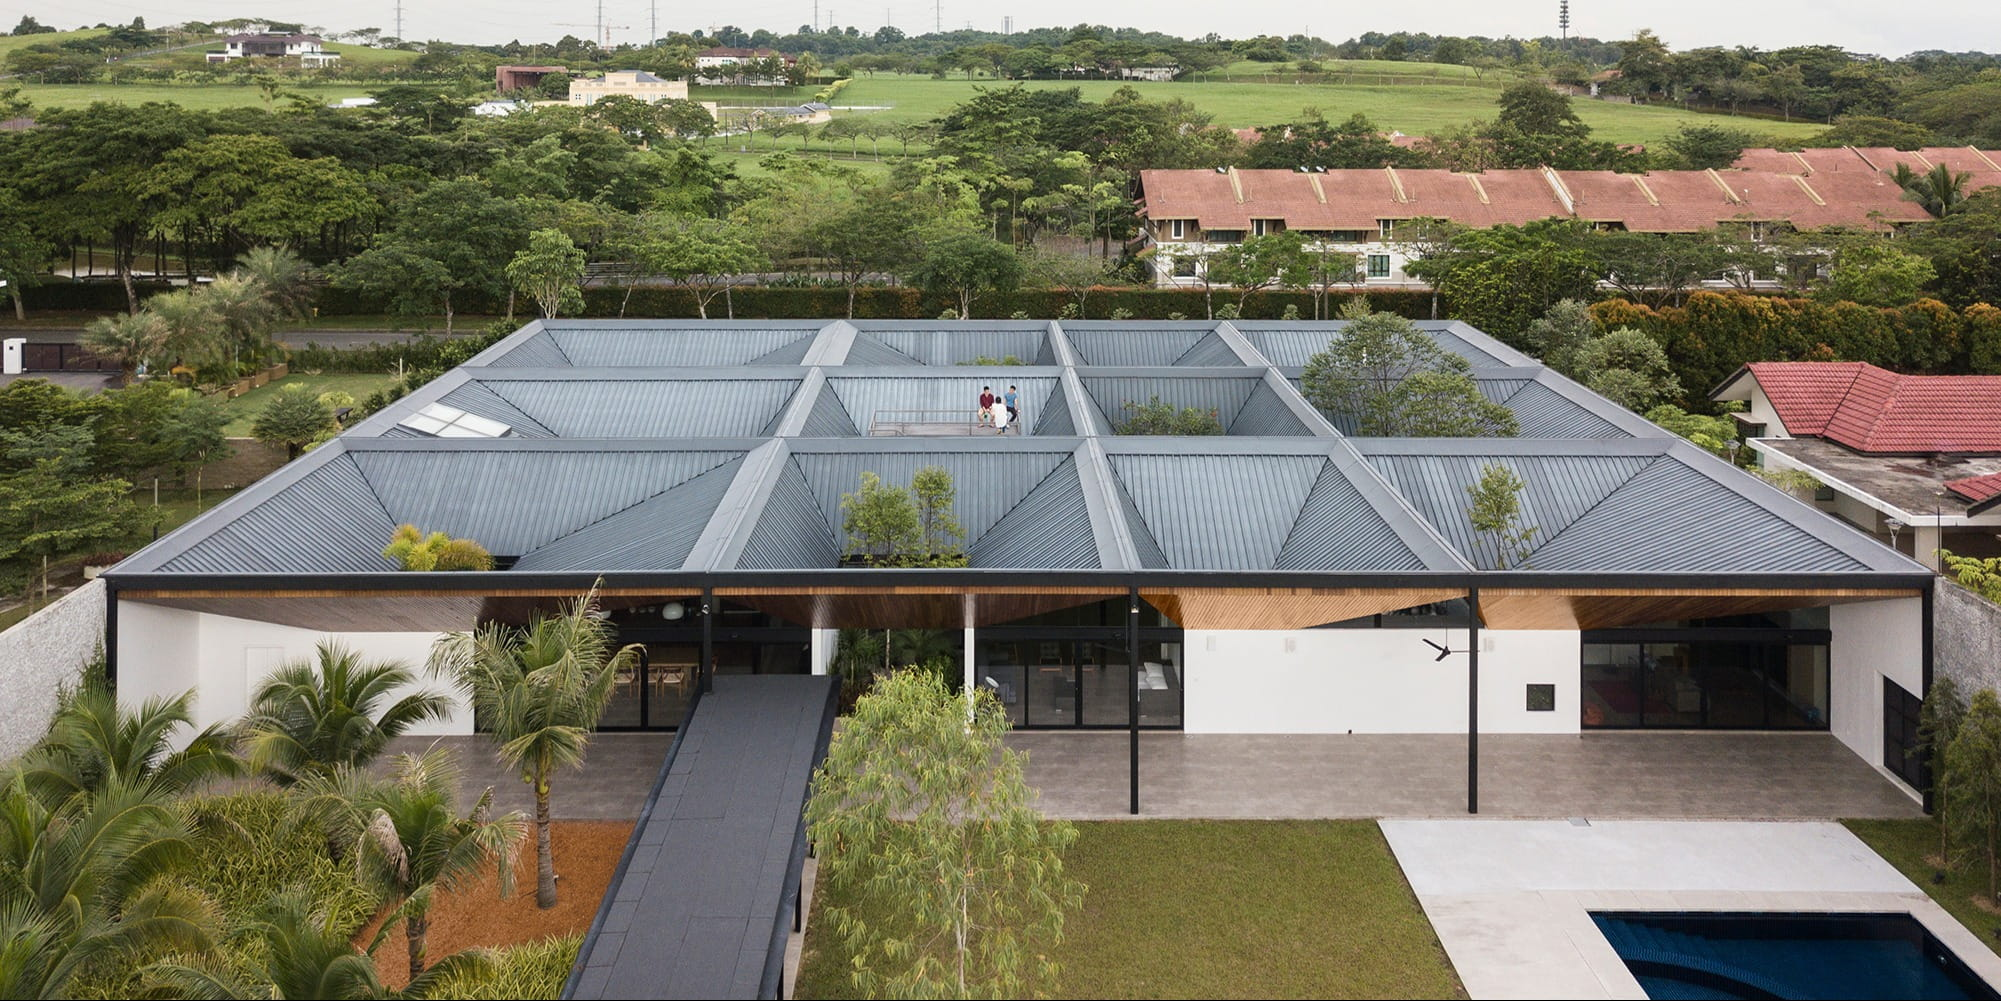 Twelve courtyards bring light, Nature and ventilation into this Malaysian house  by Formwerkz Architects